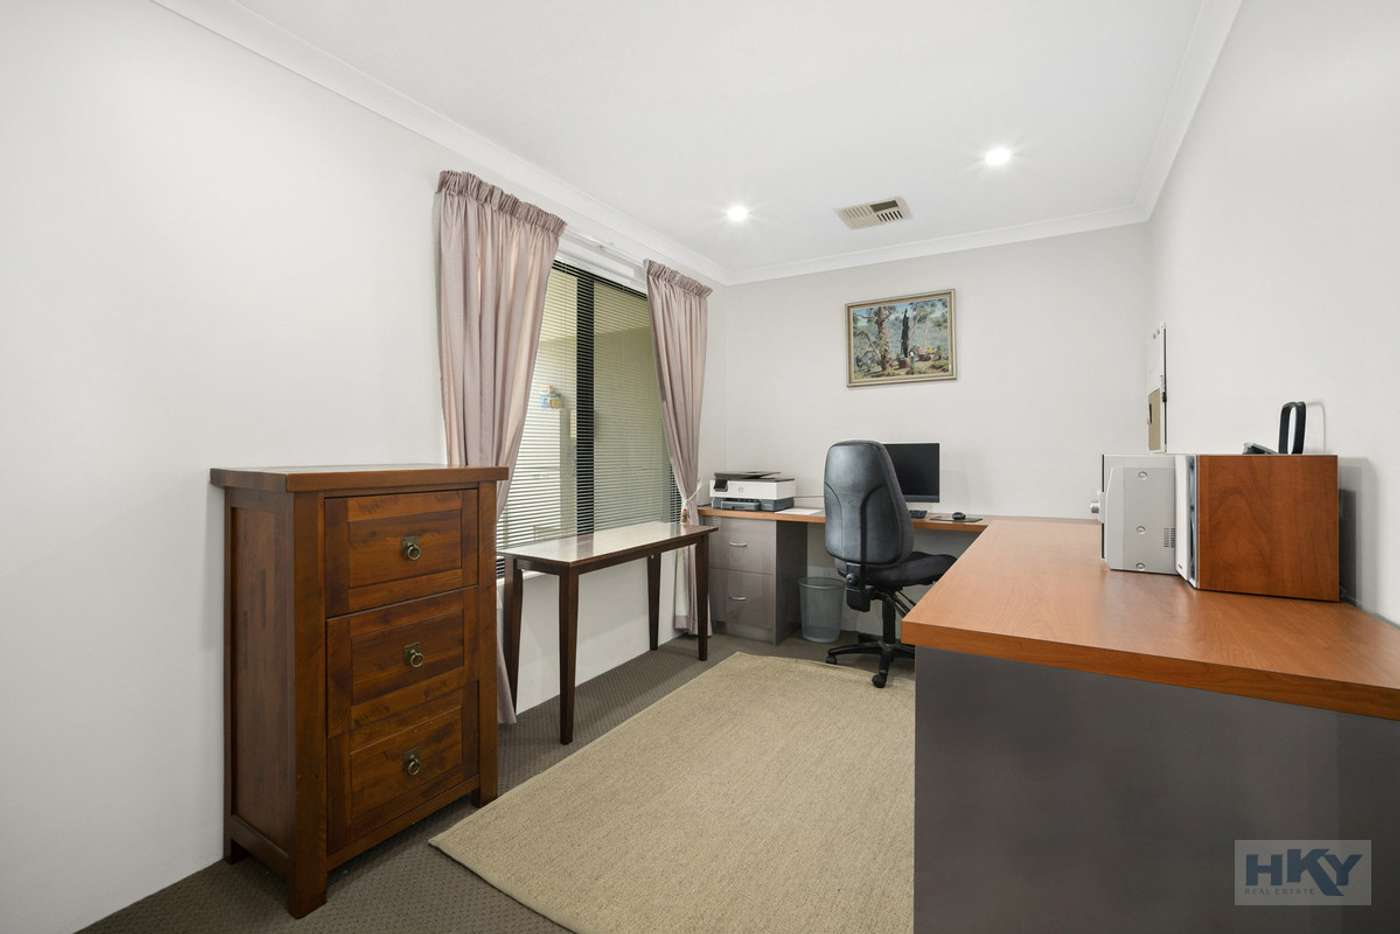 Seventh view of Homely house listing, 11 Leedon Drive, Ellenbrook WA 6069